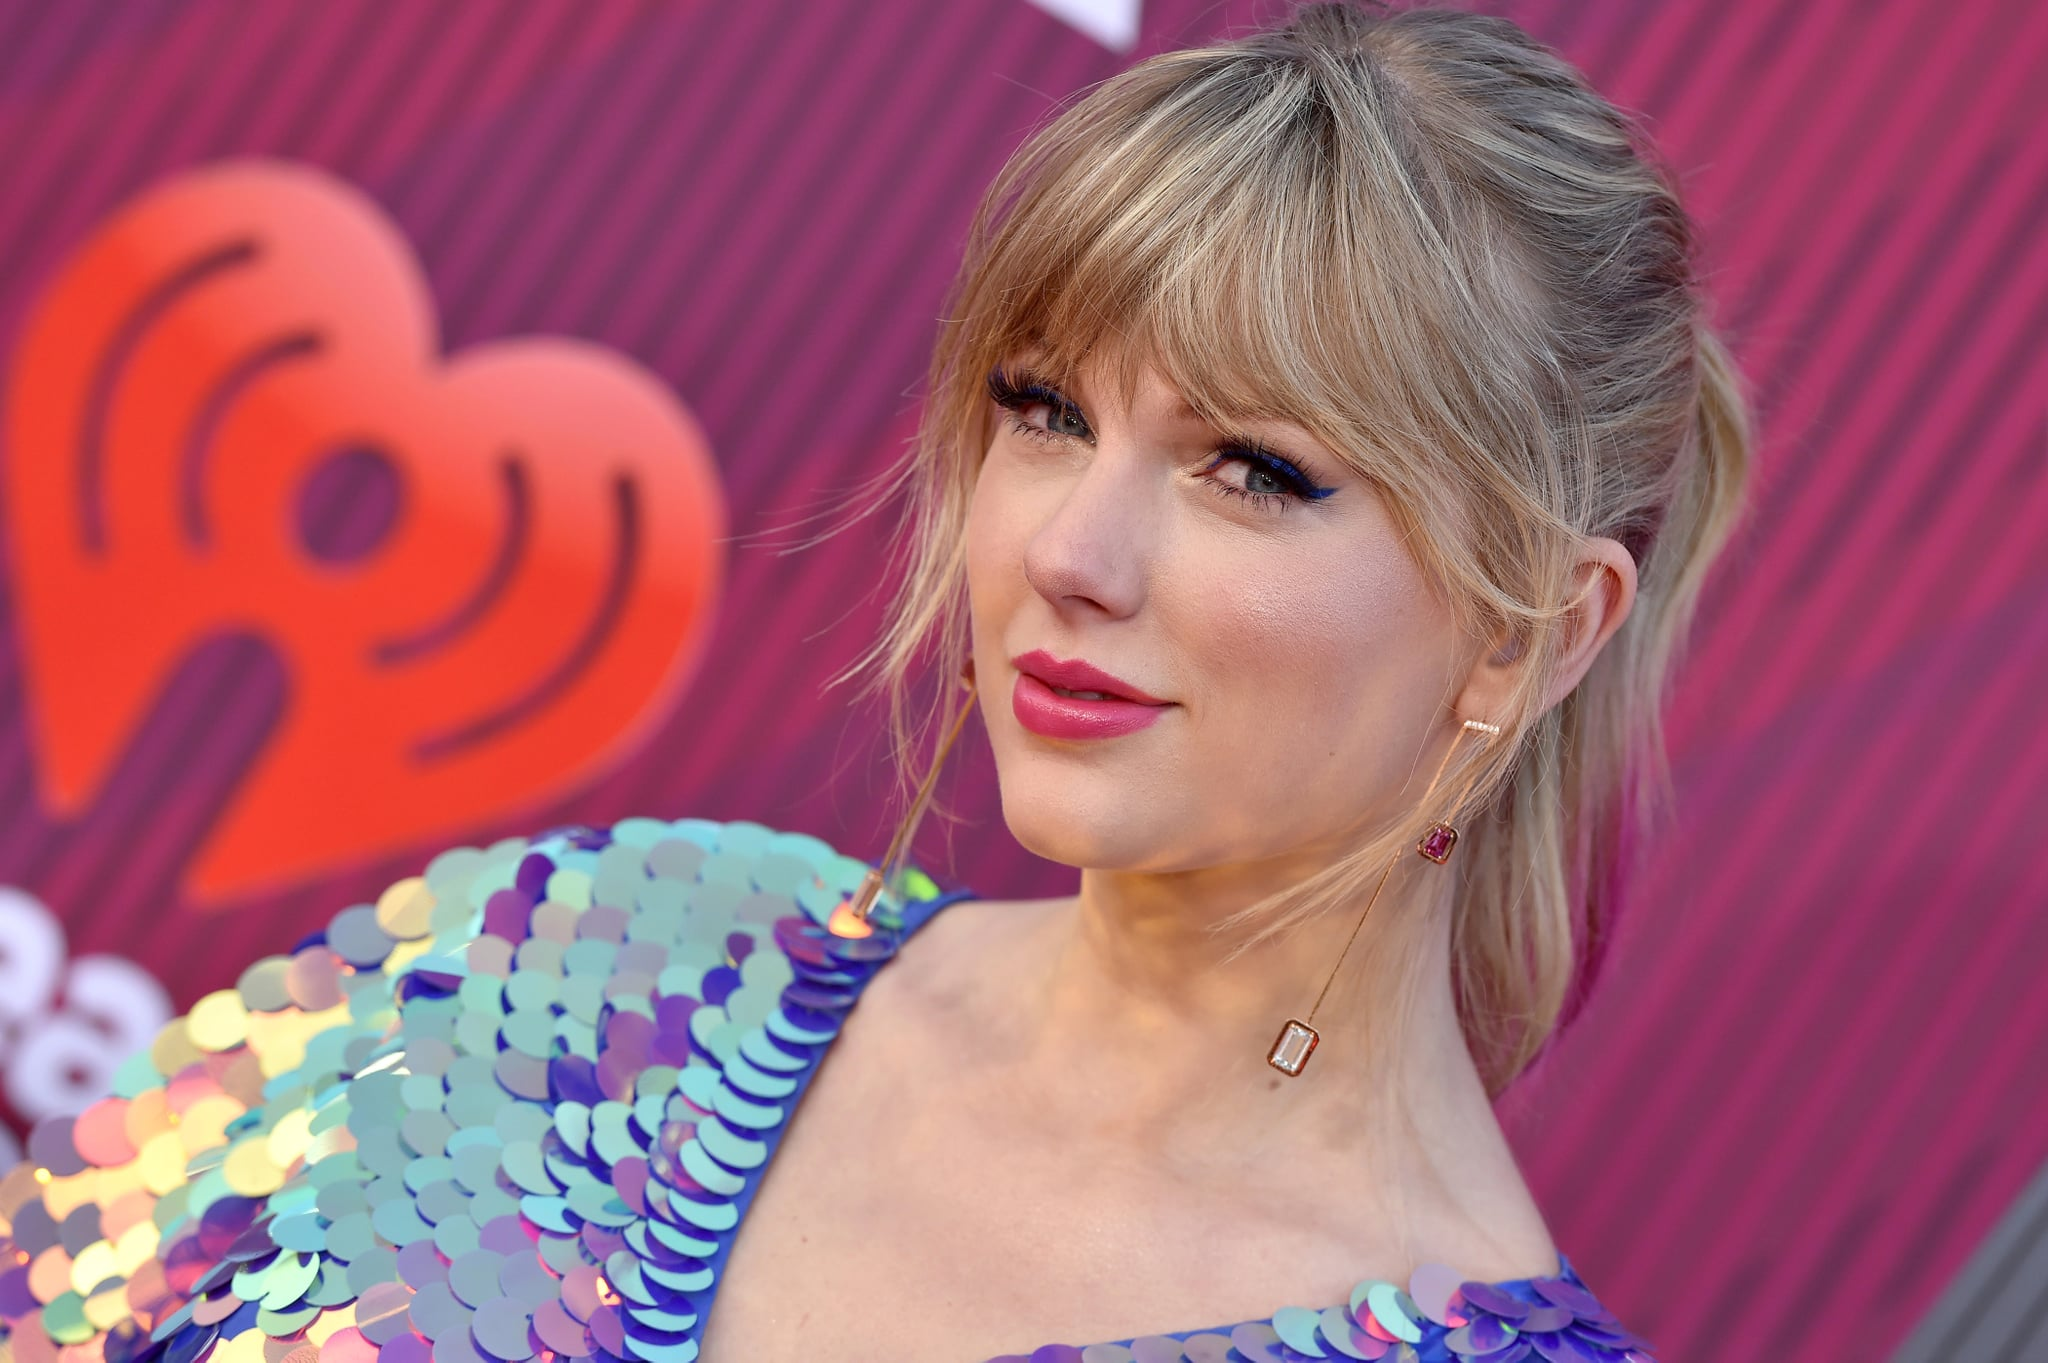 LOS ANGELES, CALIFORNIA - MARCH 14: Taylor Swift arrives at the 2019 iHeartRadio Music Awards which broadcasted live on FOX at Microsoft Theatre on March 14, 2019 in Los Angeles, California. (Photo by Axelle/Bauer-Griffin/FilmMagic)